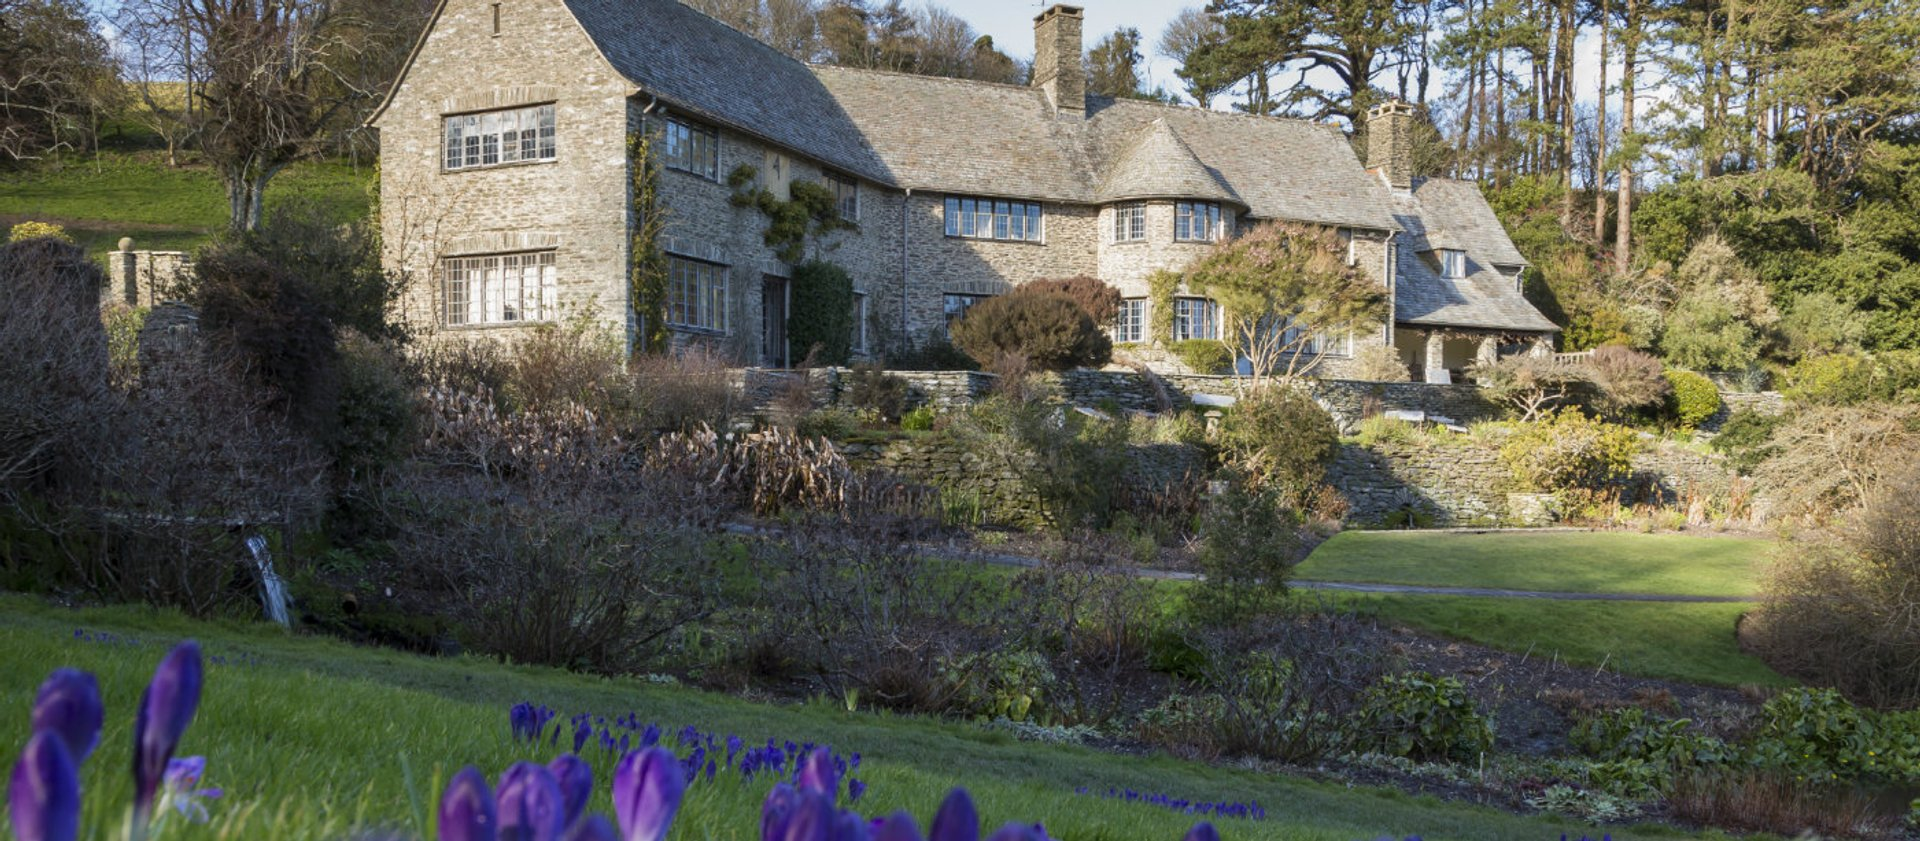 Coleton Fishacre - Dog Friendly visitor attraction near Torquay